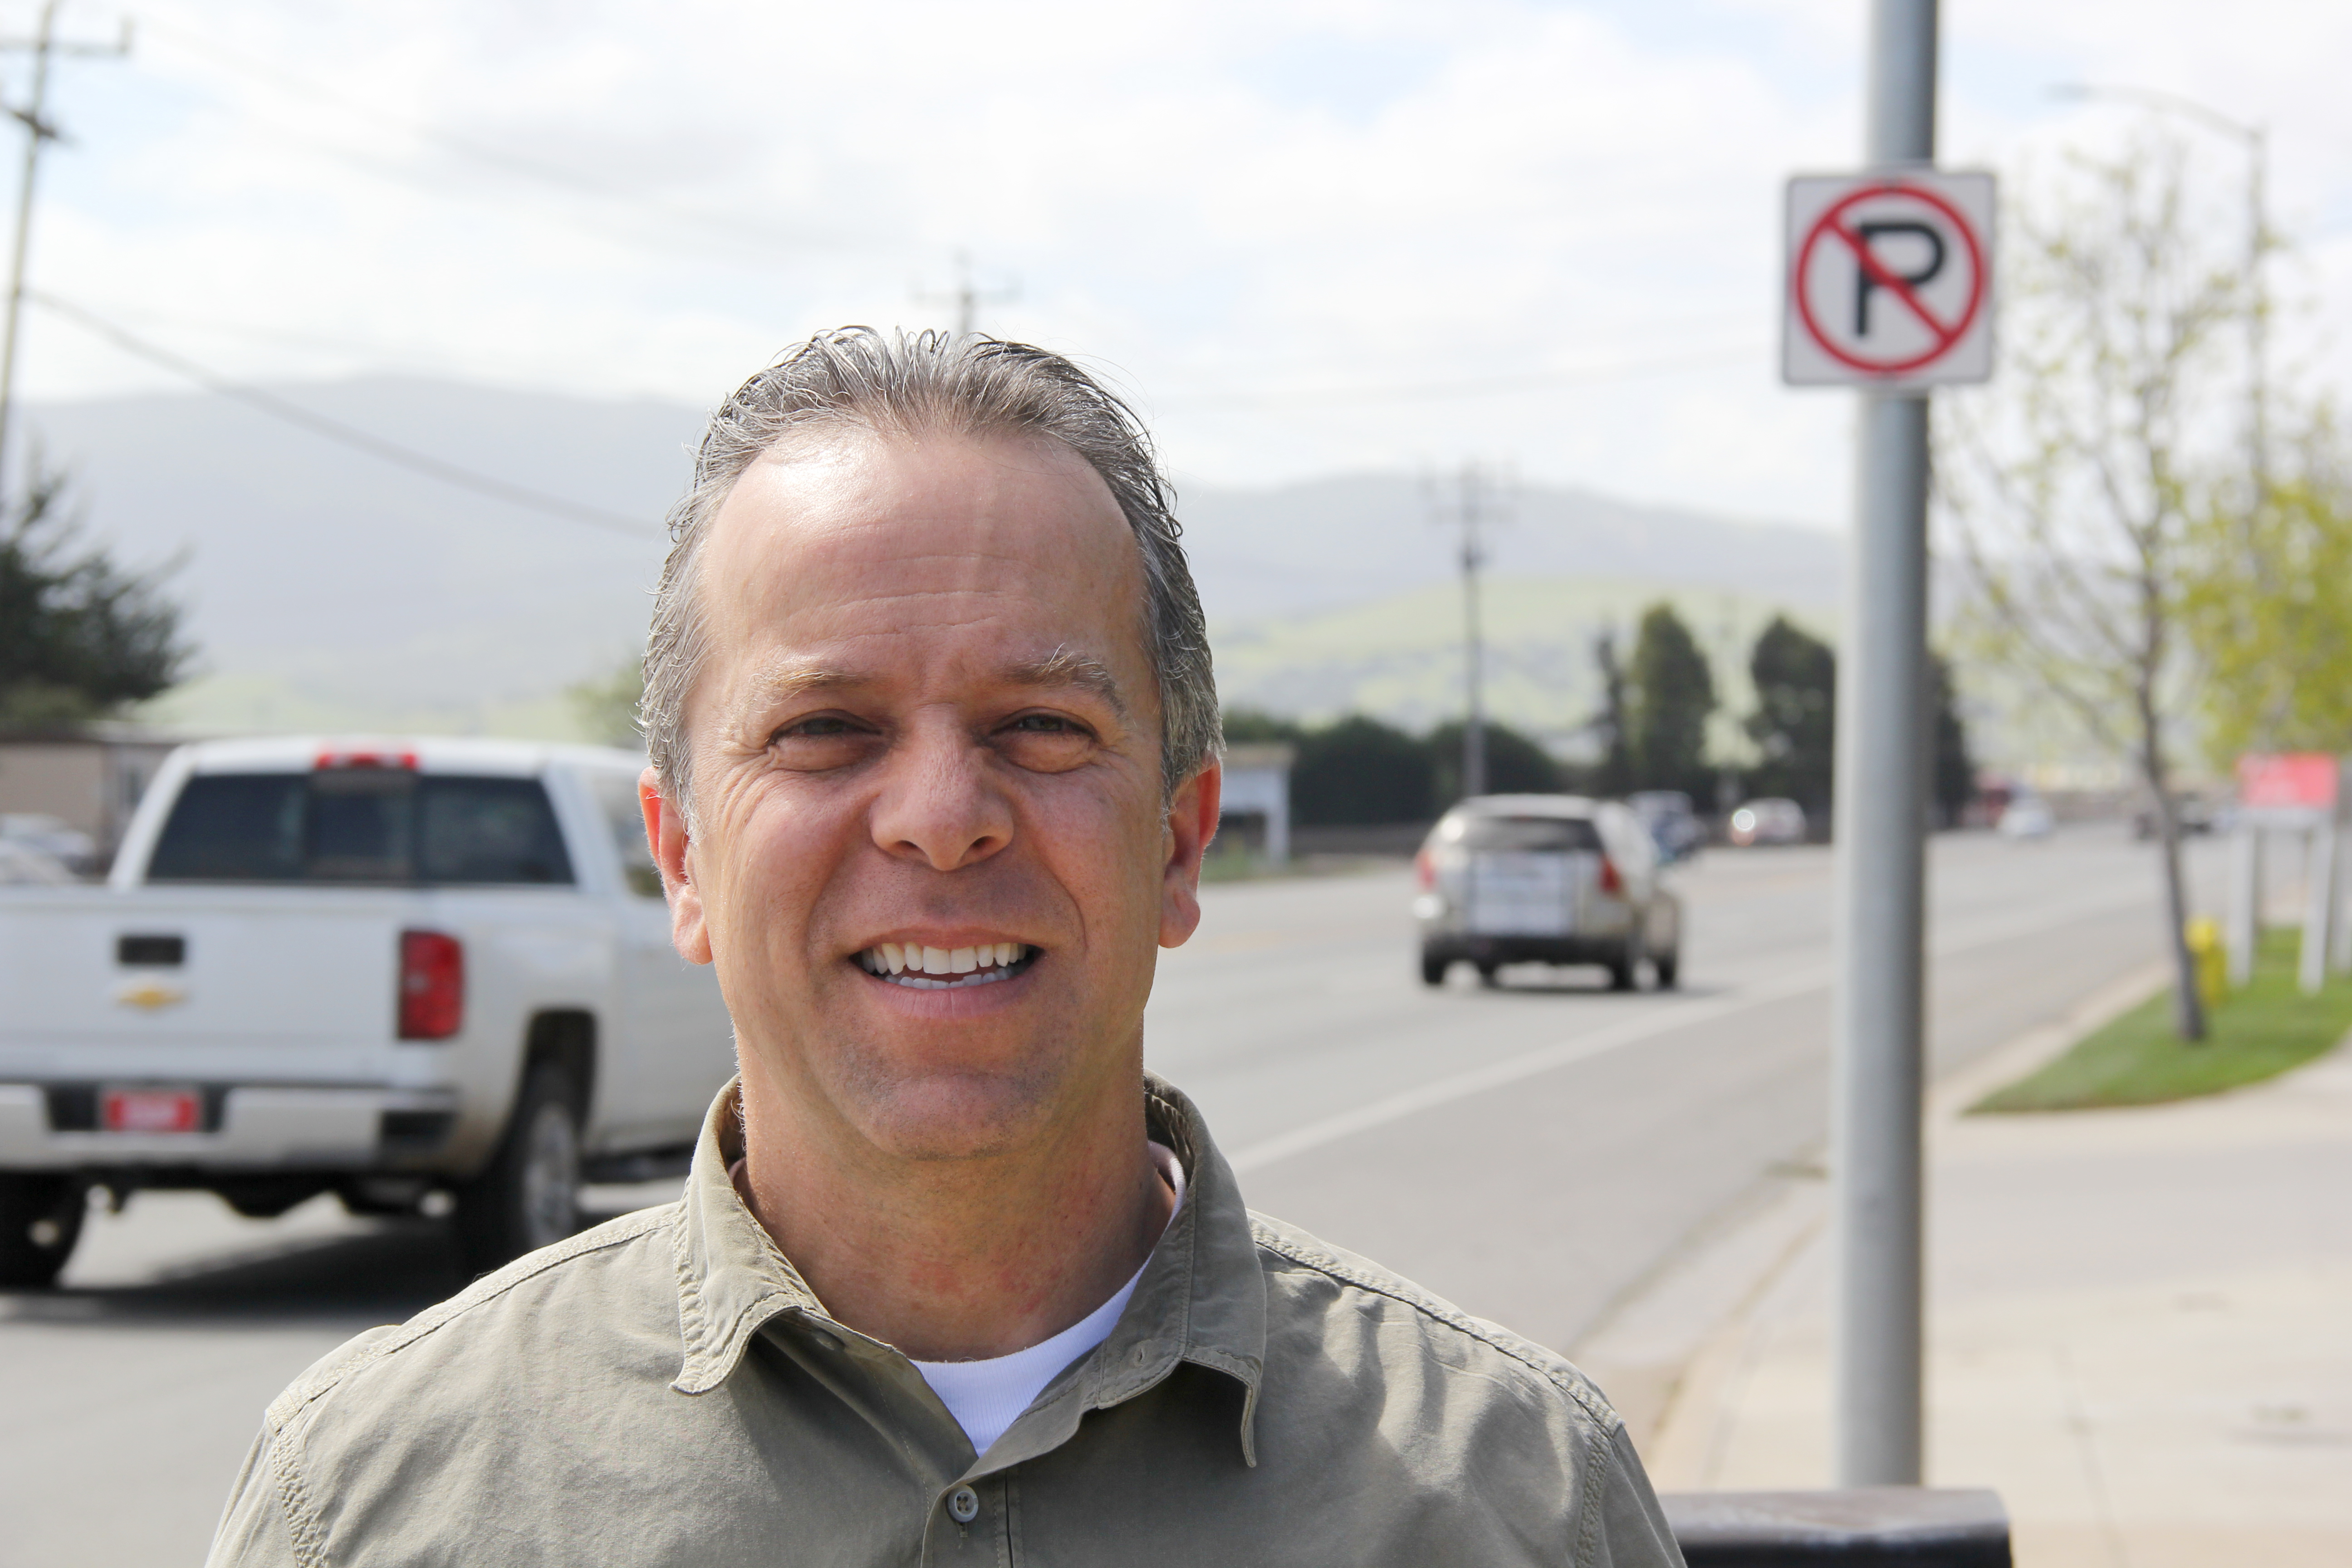 Monterey County engineer takes road less traveled